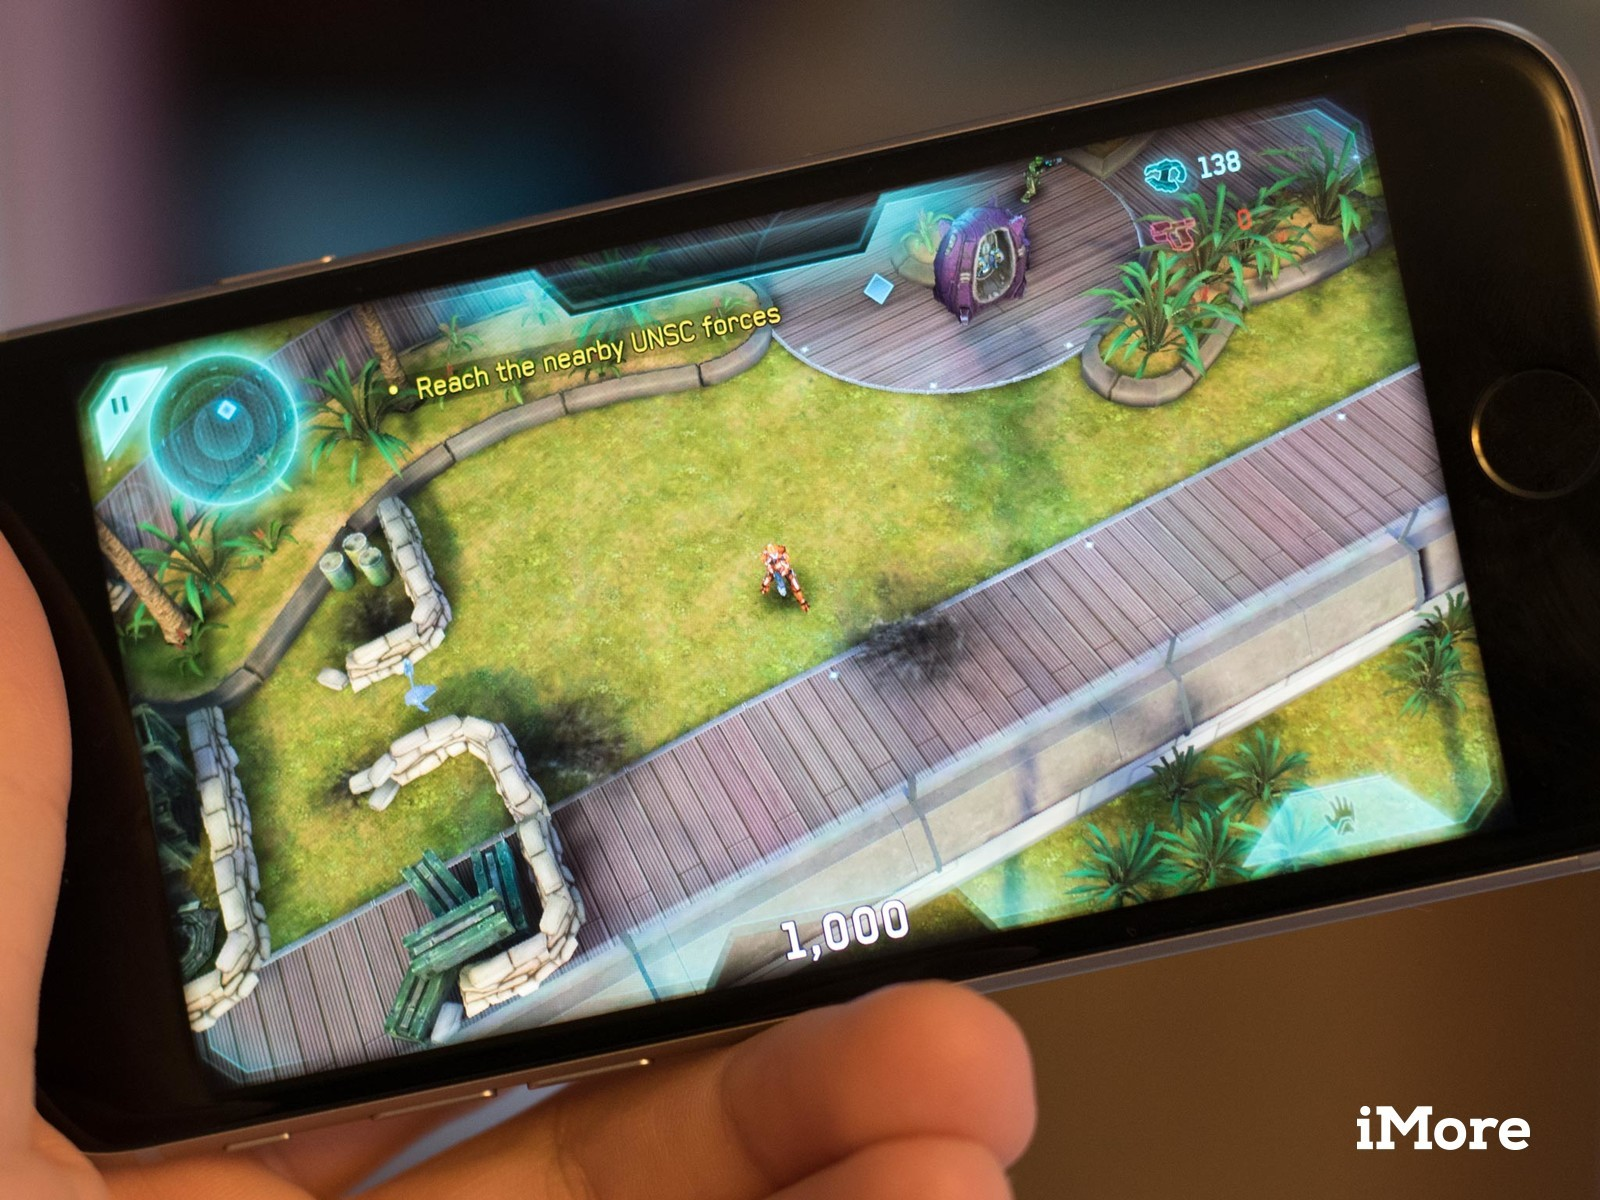 Halo comes to the iPhone and iPad with Spartan Strike and Spartan Assault